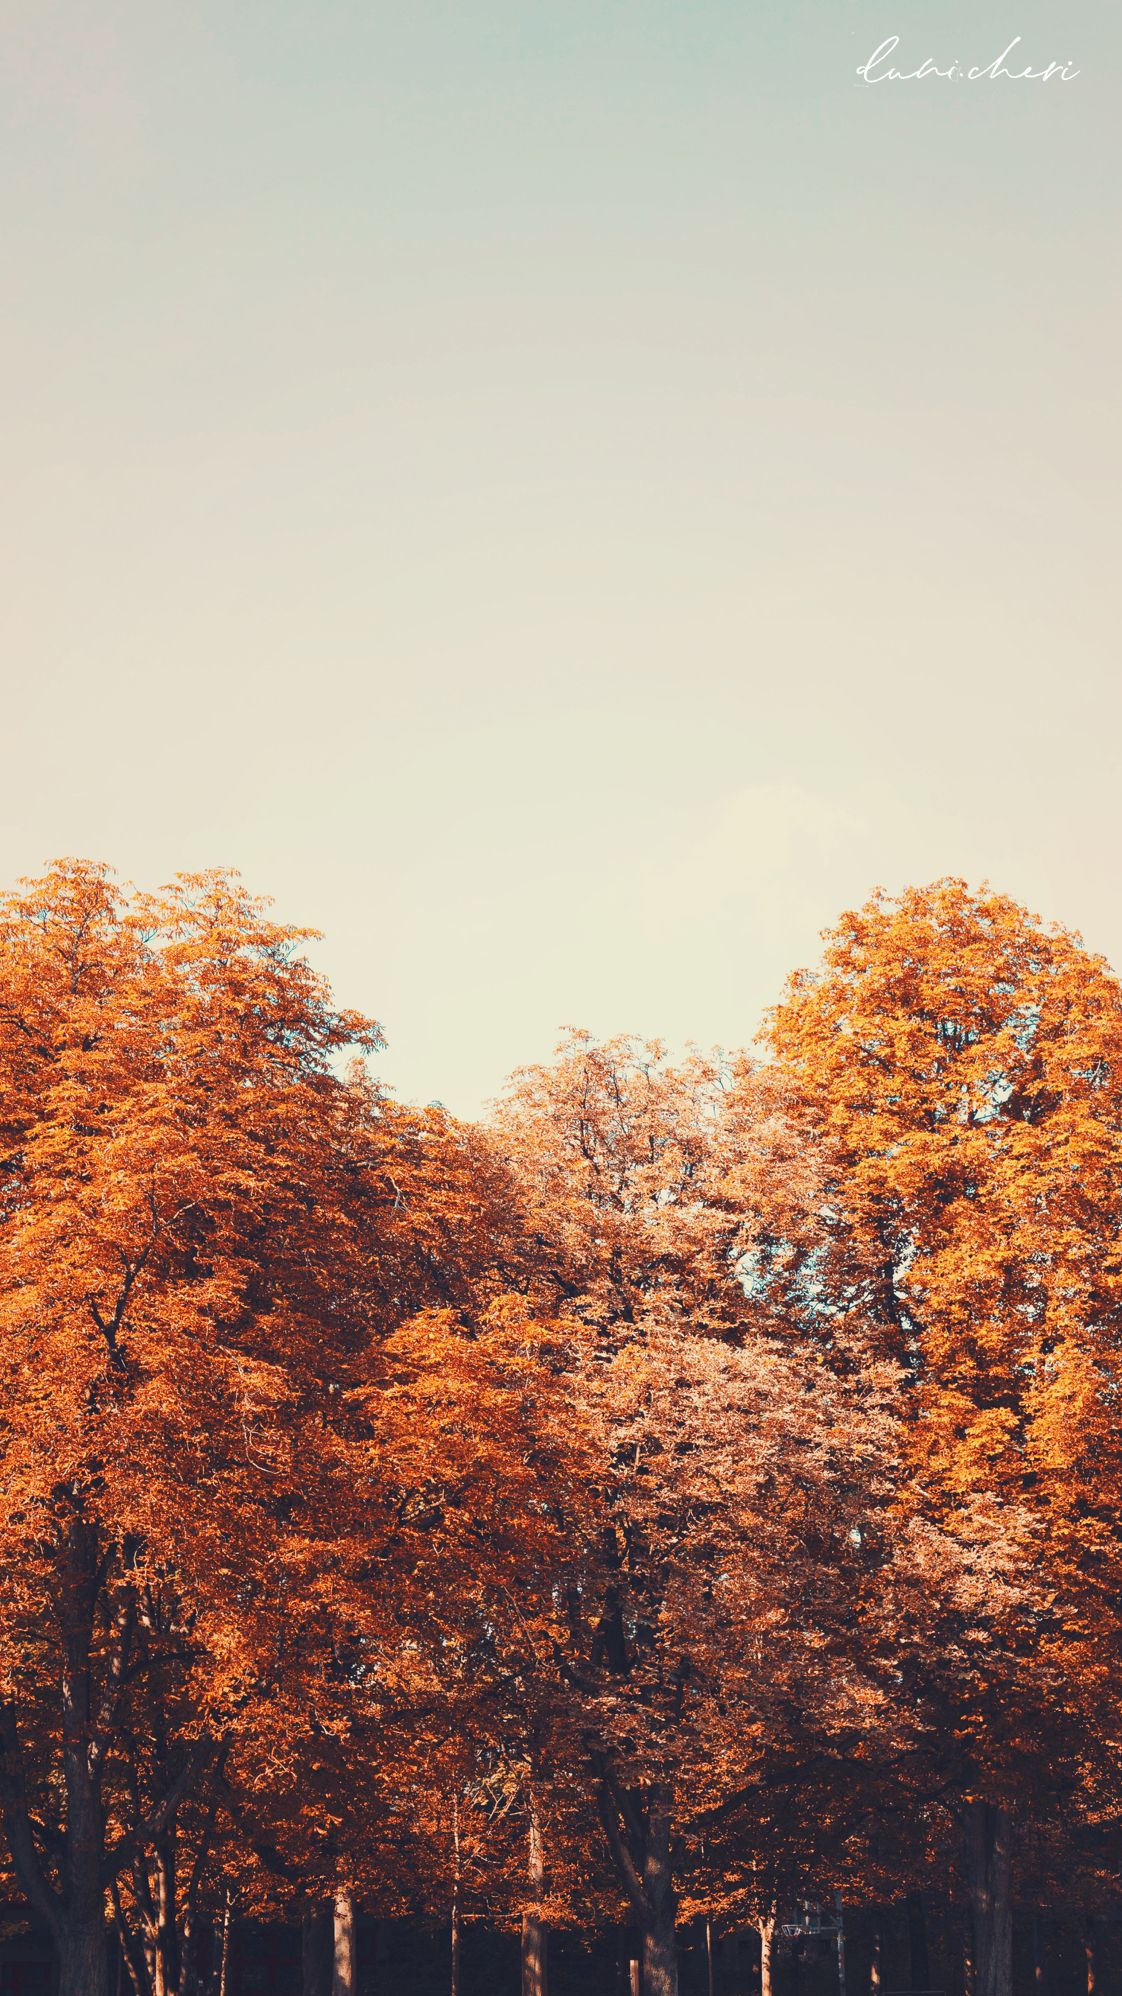 Free Download: Autumn Wallpaper ♥ Desktop & Mobile